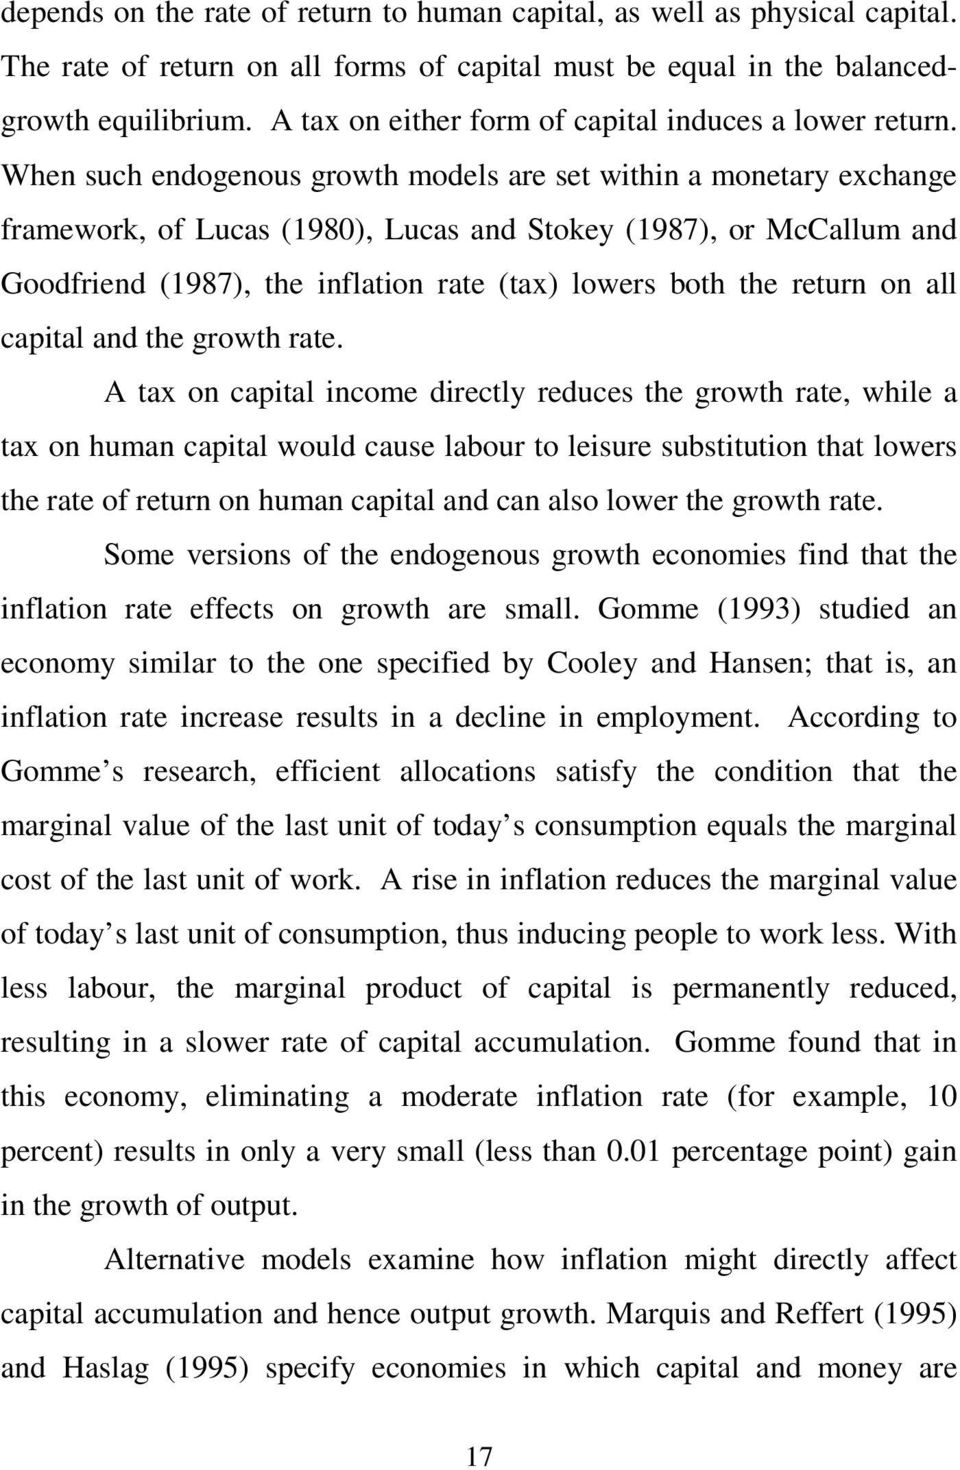 When such endogenous growth models are set within a monetary exchange framework, of Lucas (1980), Lucas and Stokey (1987), or McCallum and Goodfriend (1987), the inflation rate (tax) lowers both the